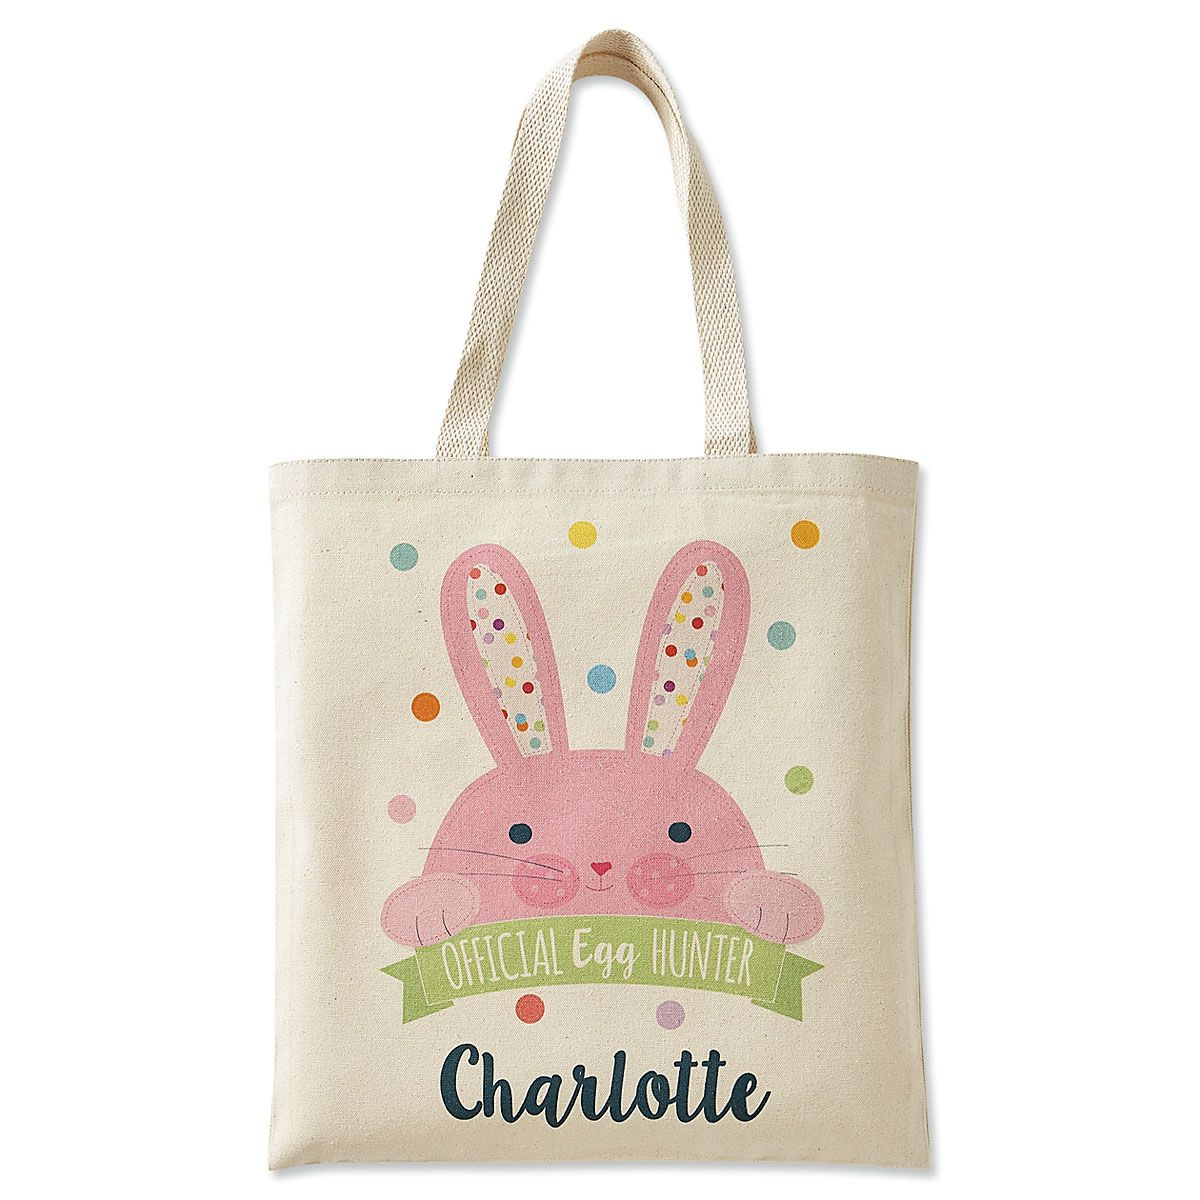 Personalized Egg-Hunter Easter Totes